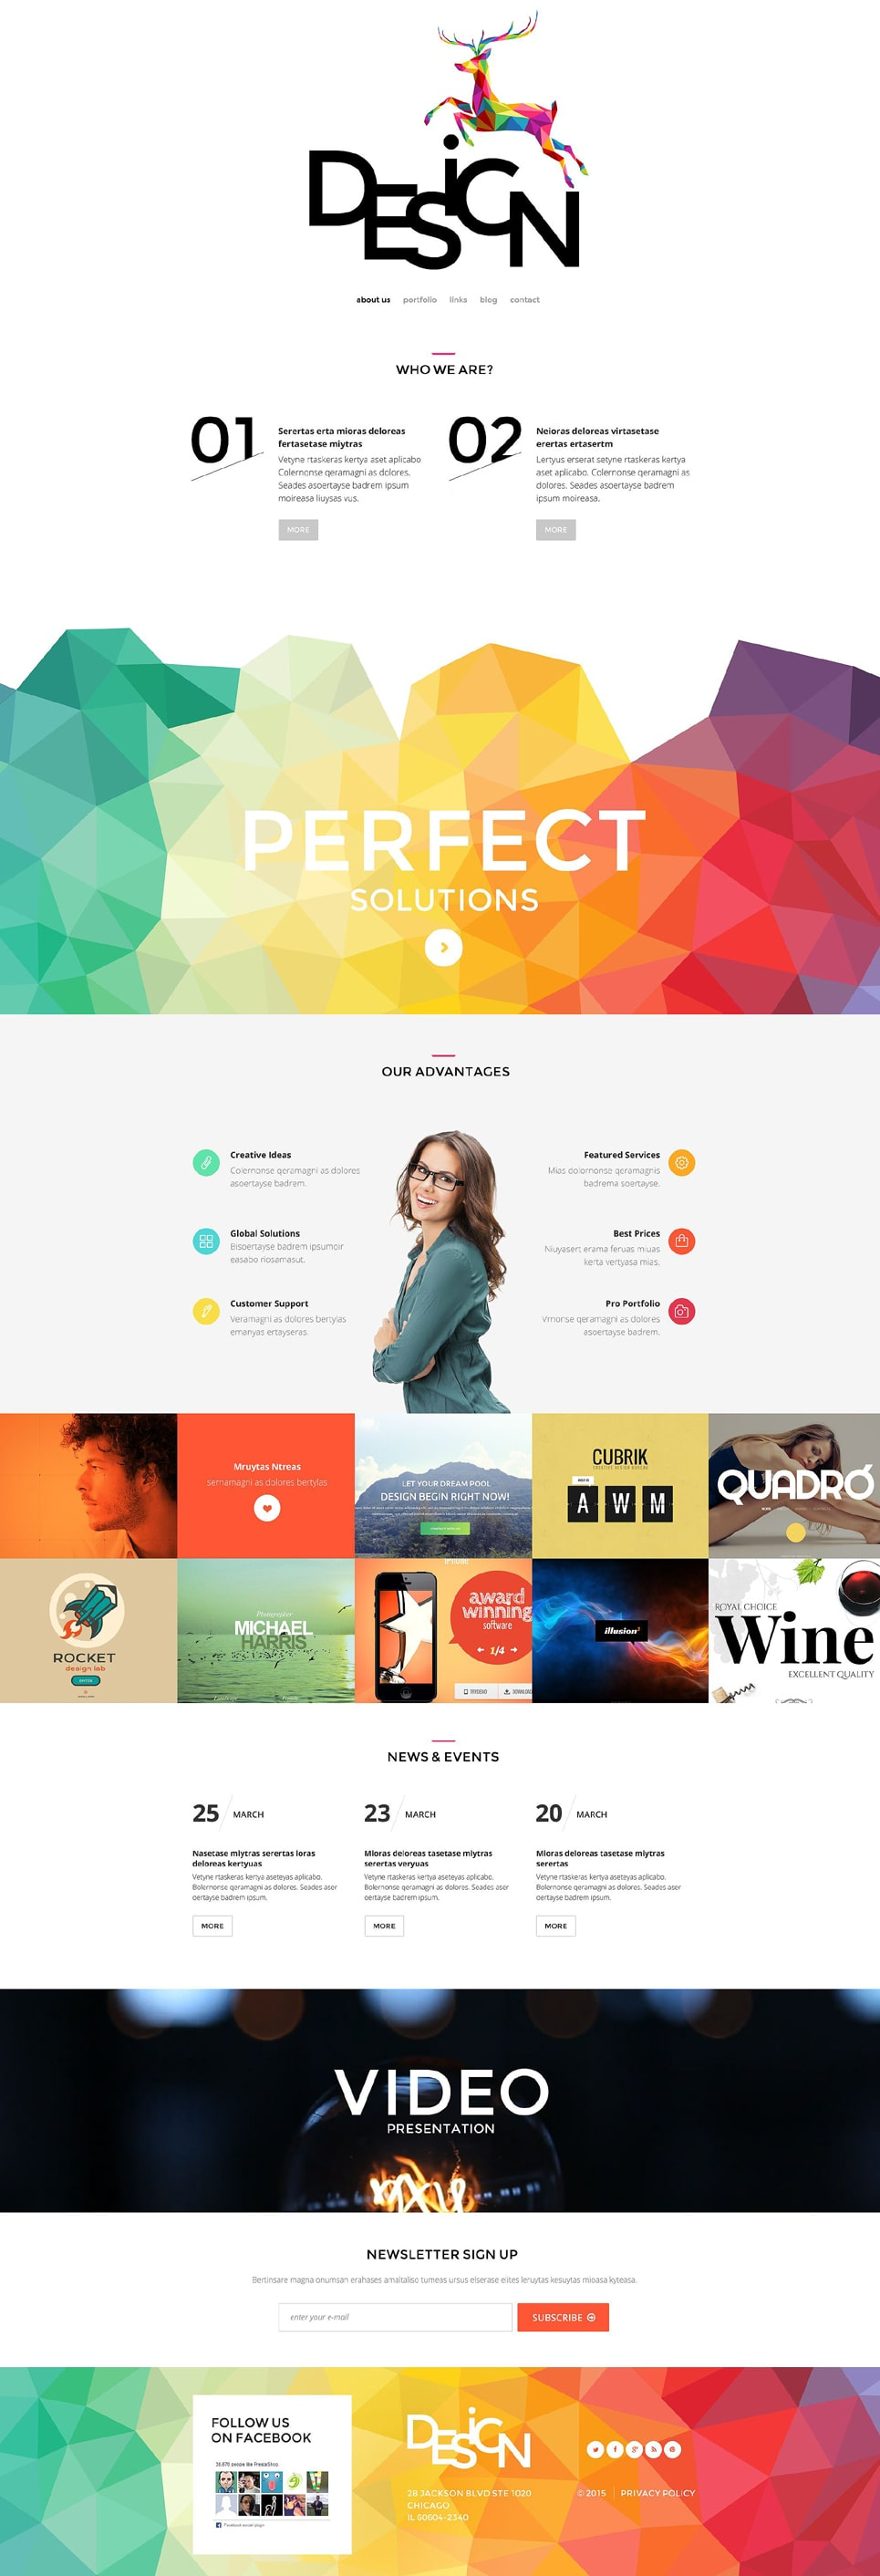 Design PSD Template